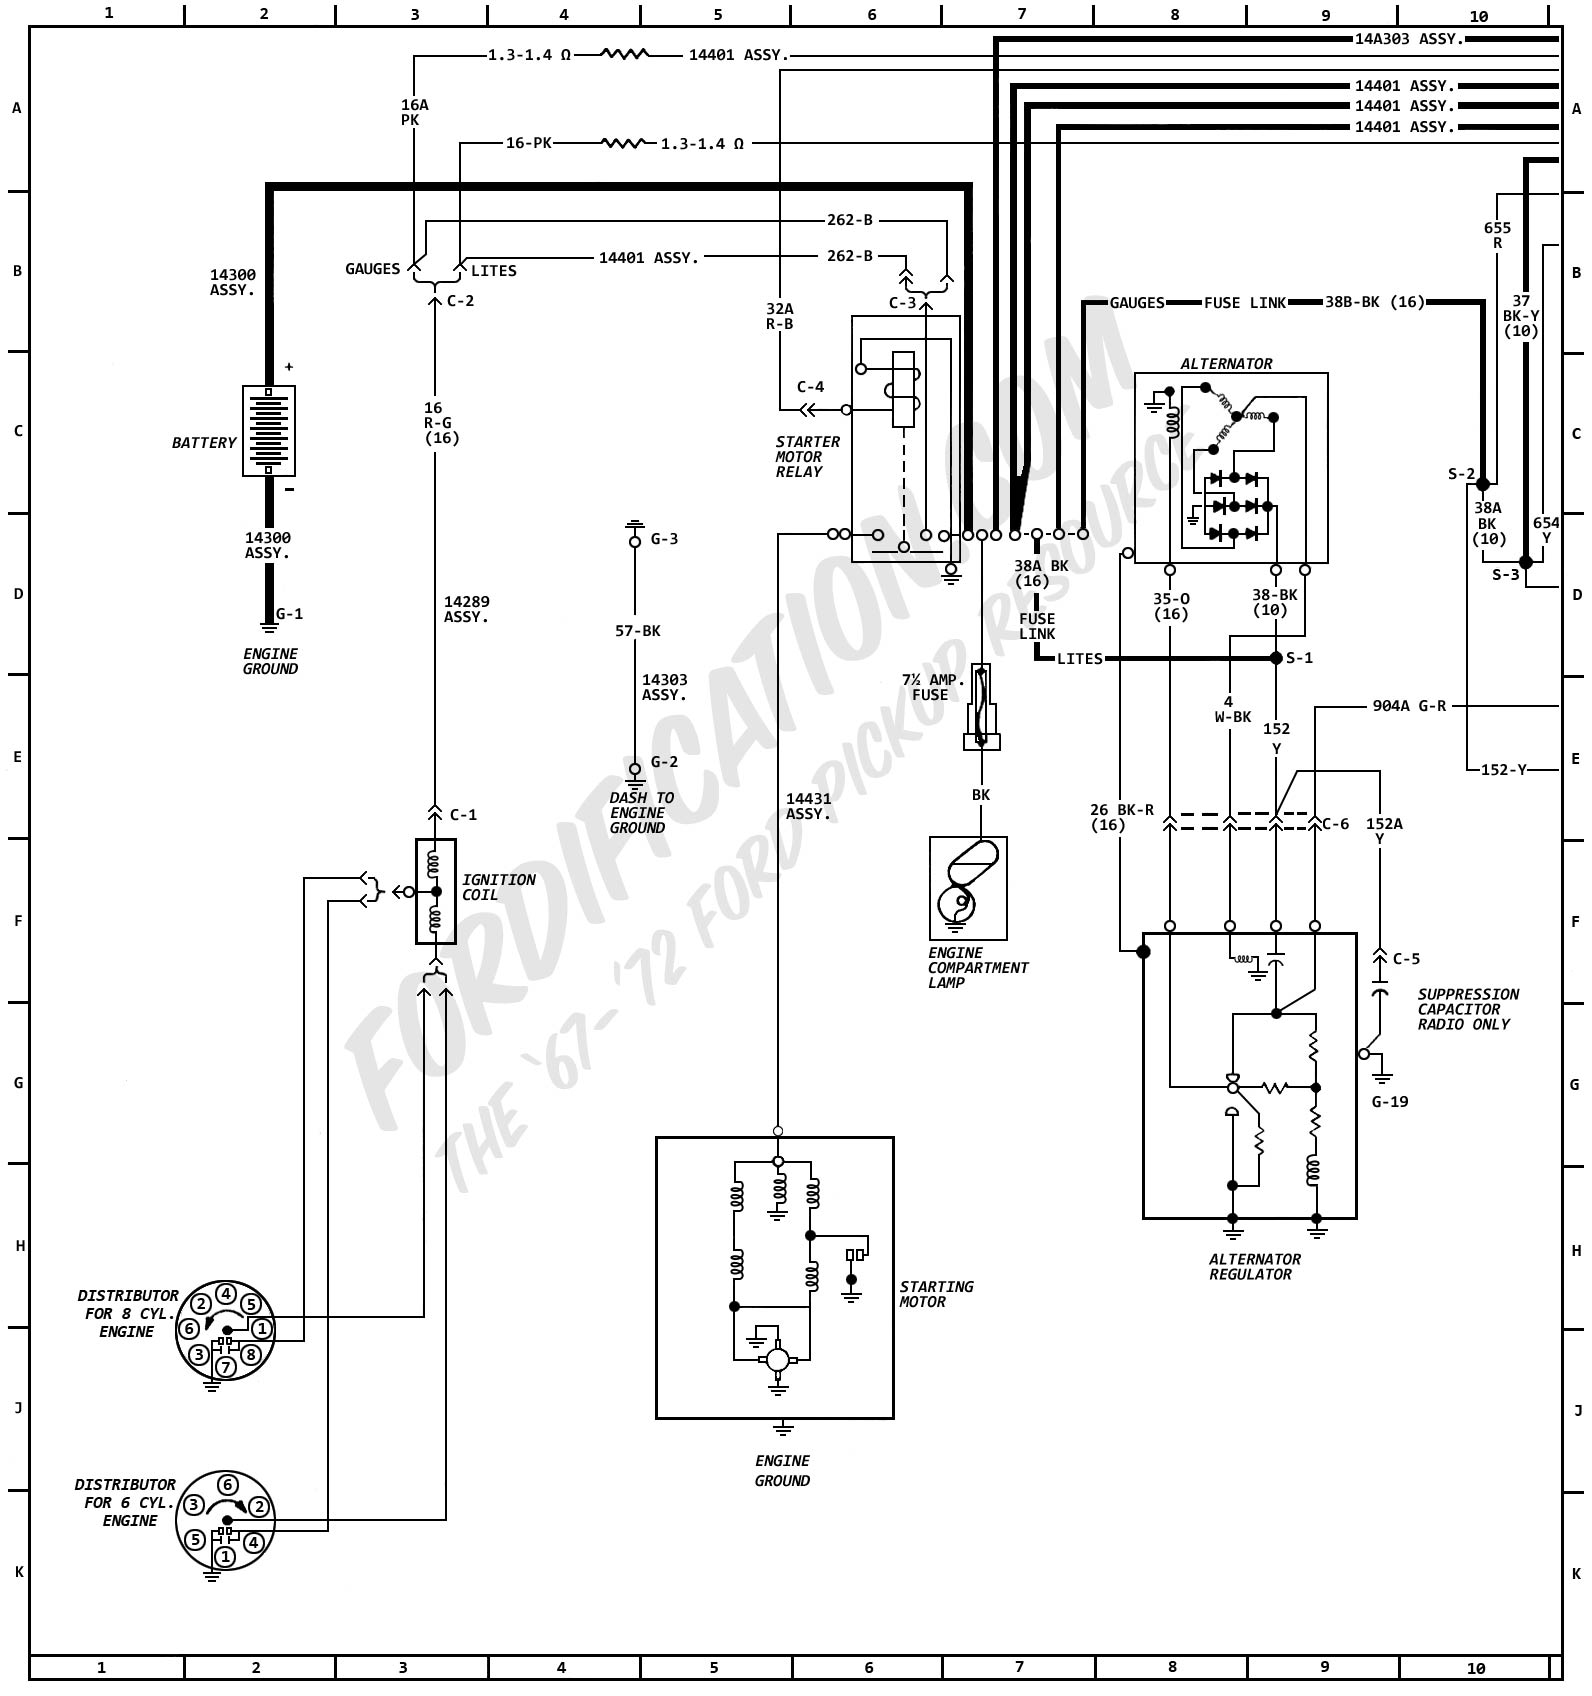 1970 Ford Mustang Heater Wiring Diagram Another Blog About Wiring 2012  Dodge Charger Stereo Wiring 1967 C30 Wiring Diagram